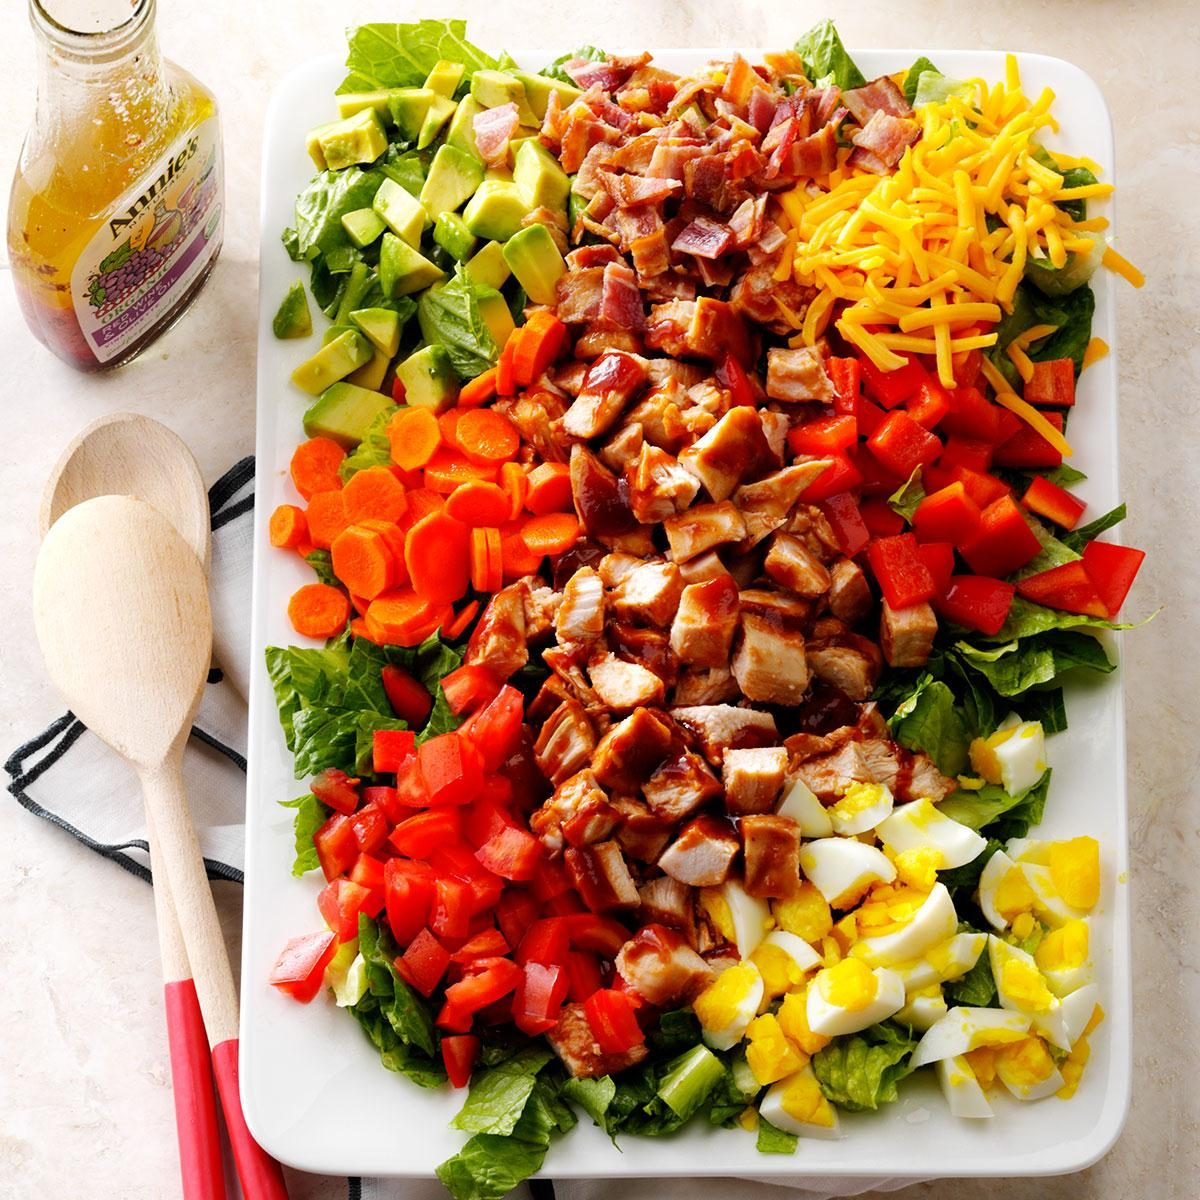 Inspired by: Hard Rock Cafe's California Style Cobb Salad